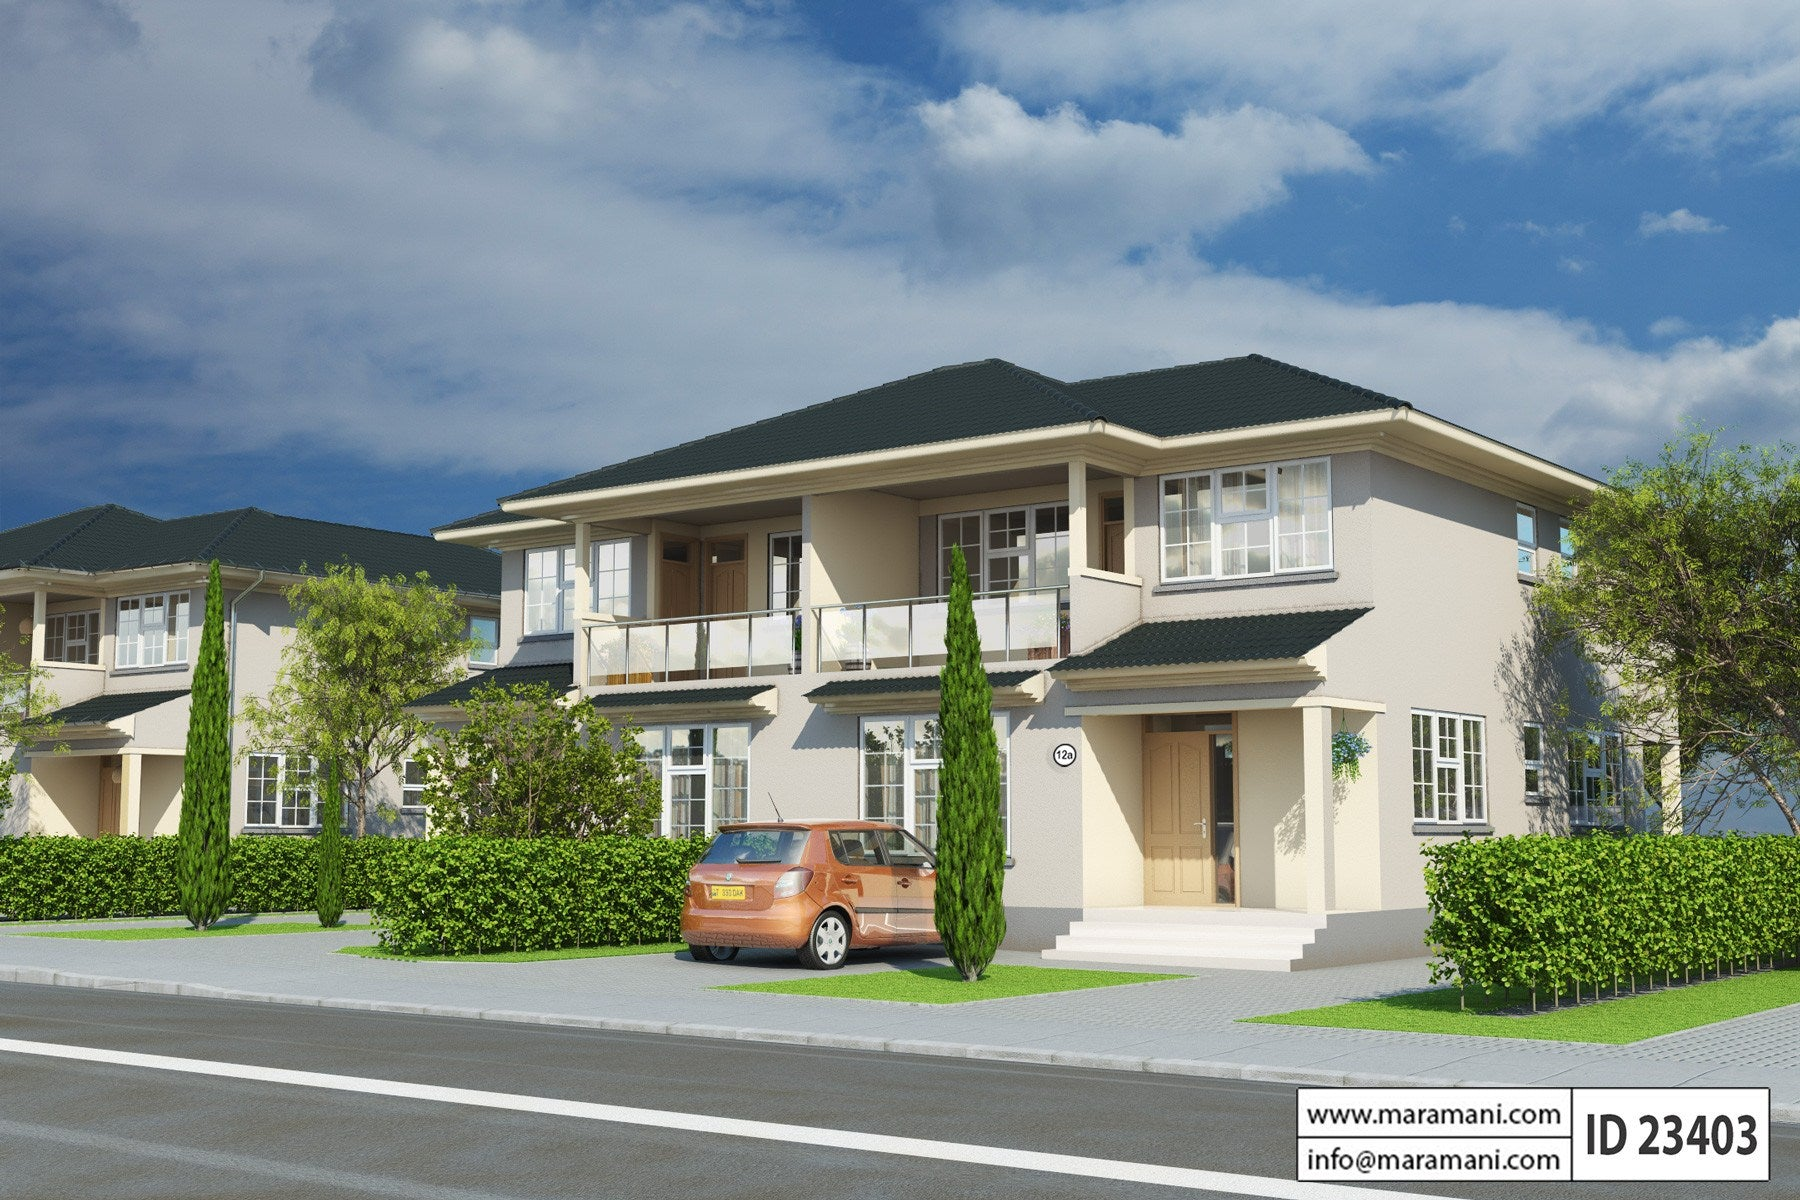 3 bedroom duplex house plan id 23403 house designs by for Id home design